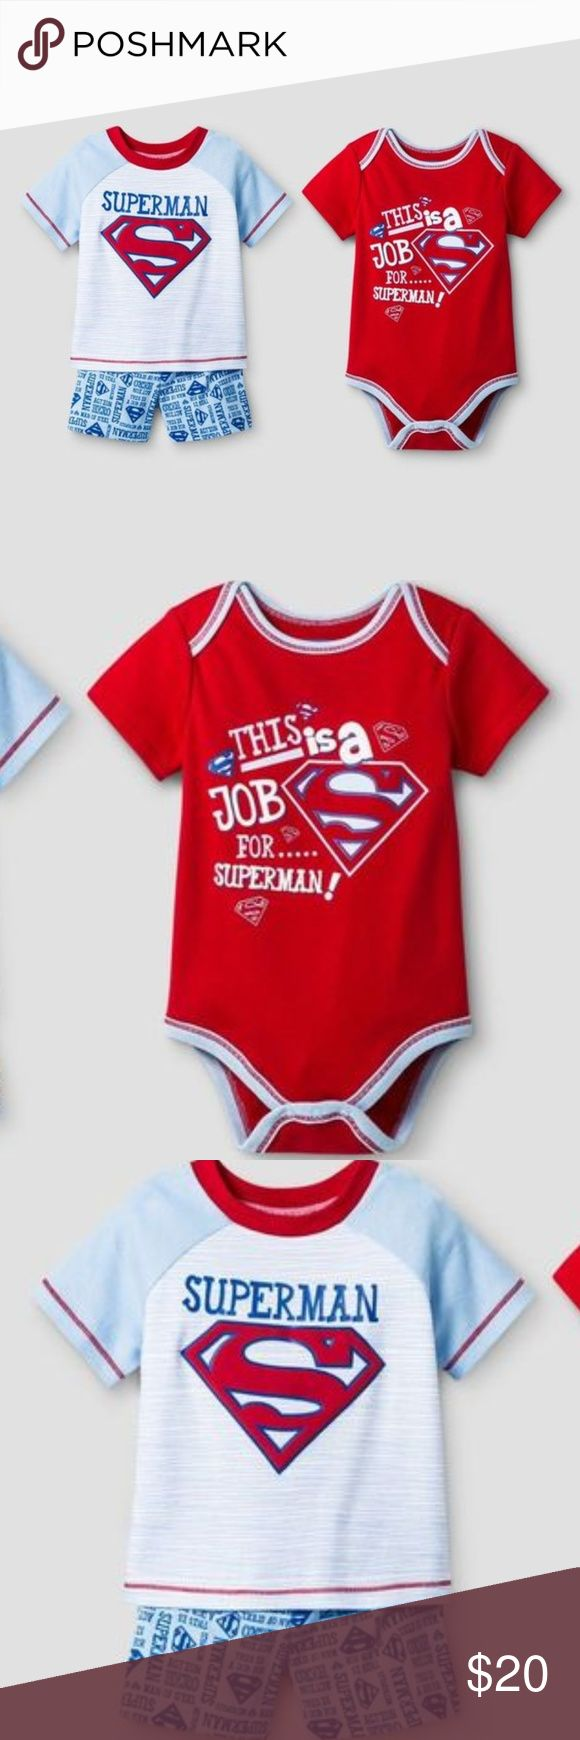 New WARNER BROS. Baby Boys 3 PC Superman Short Set This Warner Bros. Baby Boys' 3-Piece Superman Shorts Set in Red is just the thing your little super hero needs. This set includes a short sleeve bodysuit, short sleeve tee shirt and coordinating shorts.   available in size NB | 0-3M condition: new without tags  @cjrose25 Warner's Matching Sets